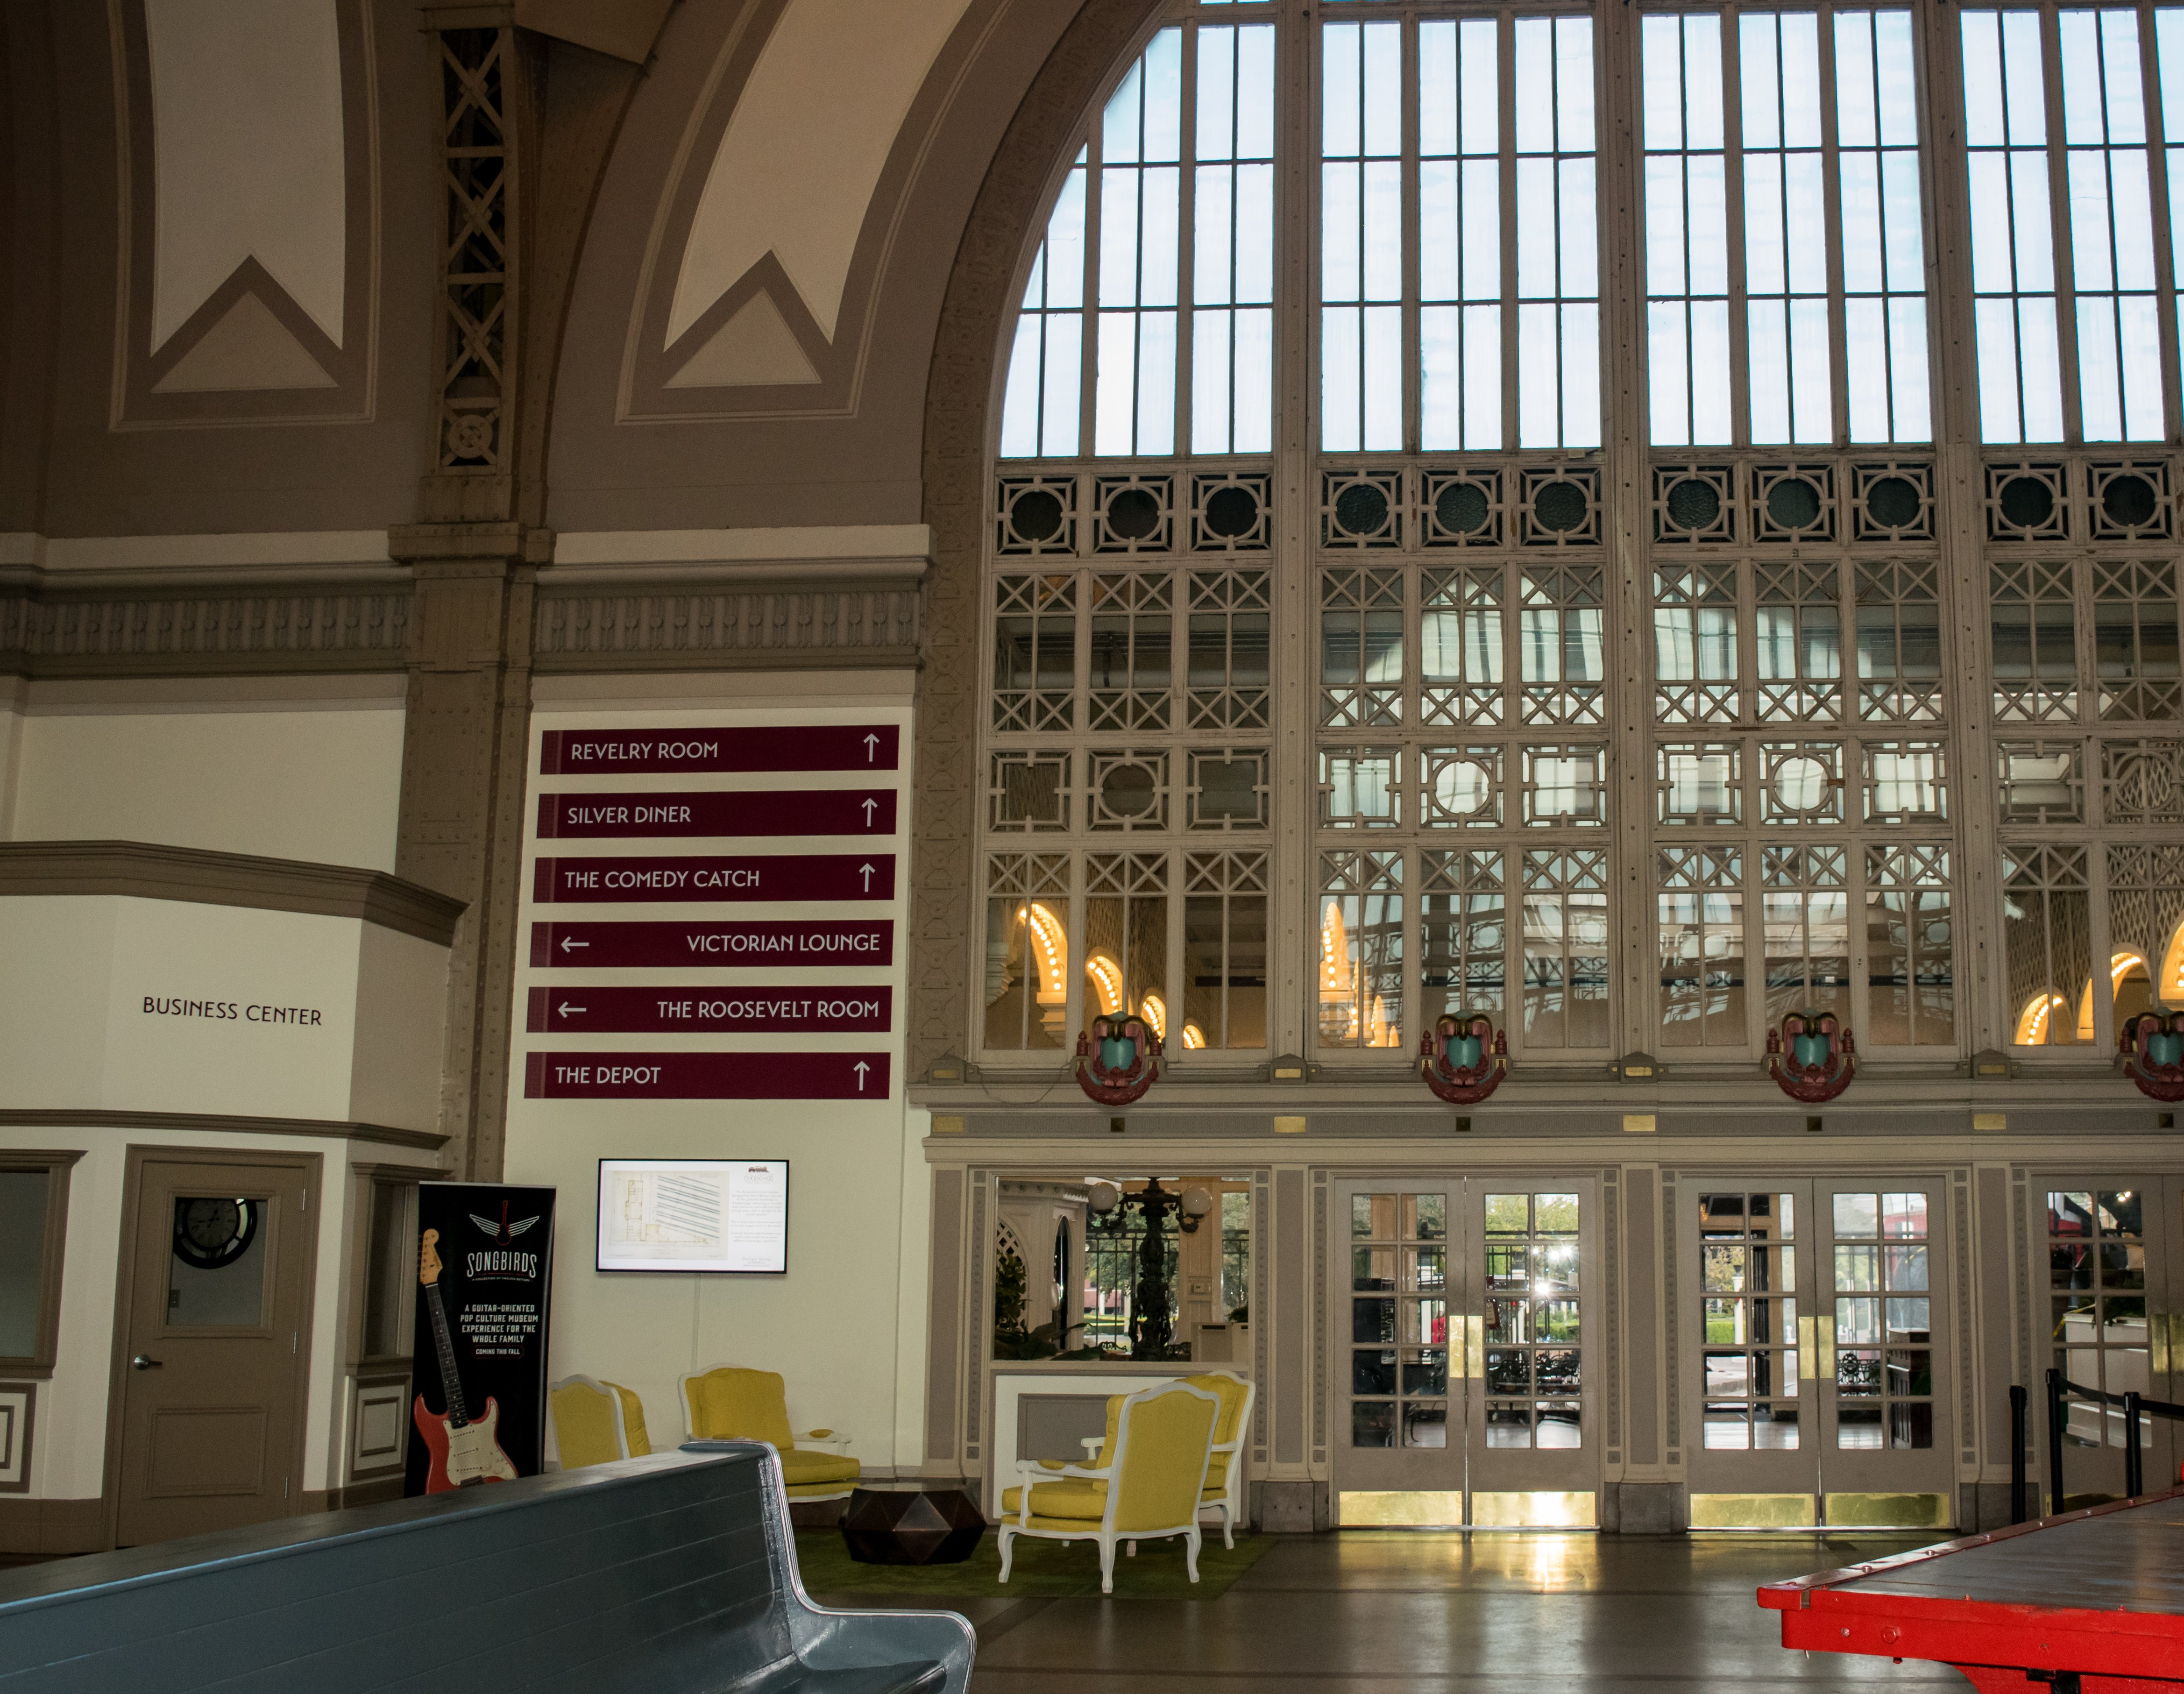 terminal building with arched windows and view of garden at the chattanooga choo choo hotel - Chattanooga Choo Choo Gardens Restaurant Menu